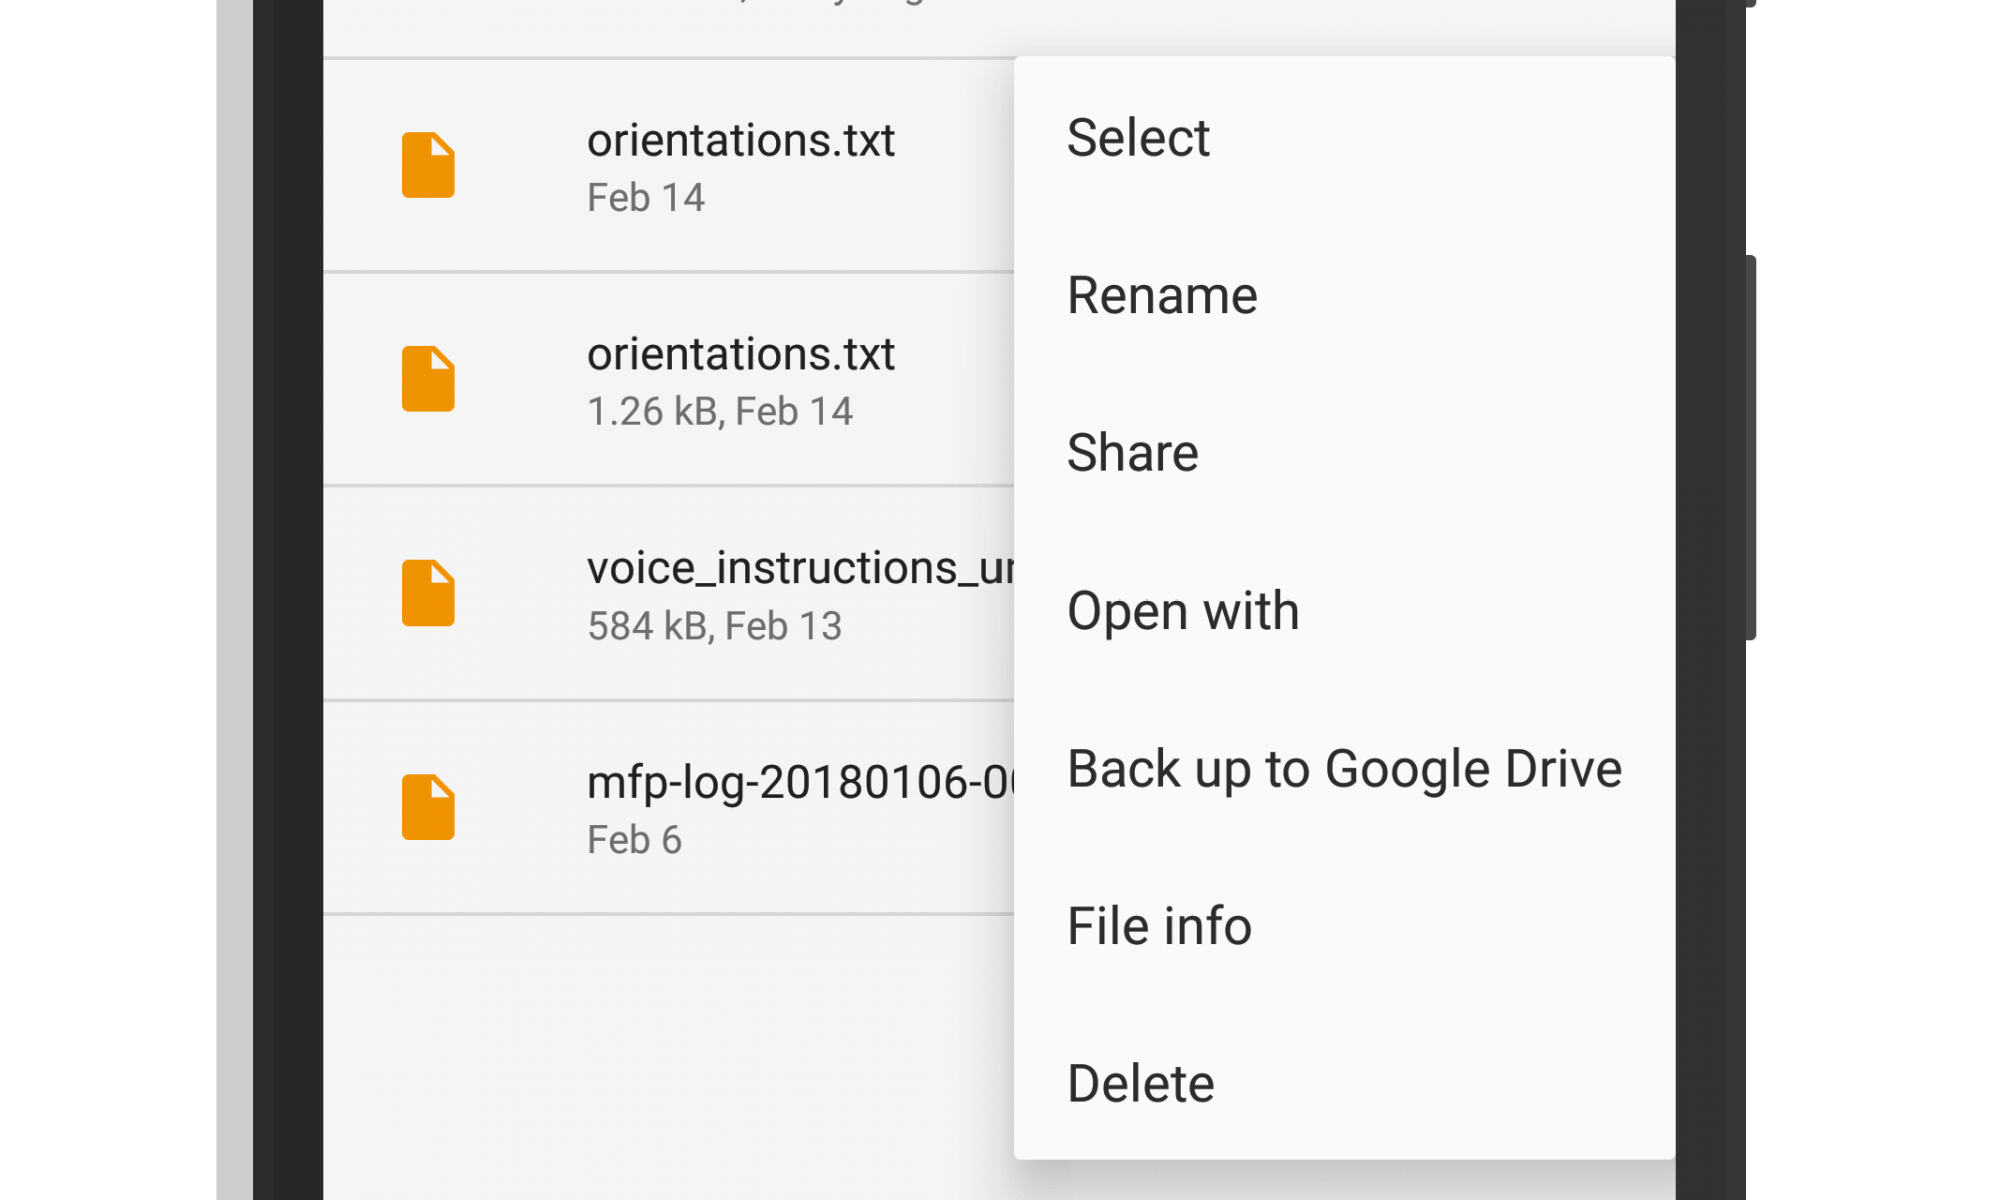 Google Drive Backup in File Go